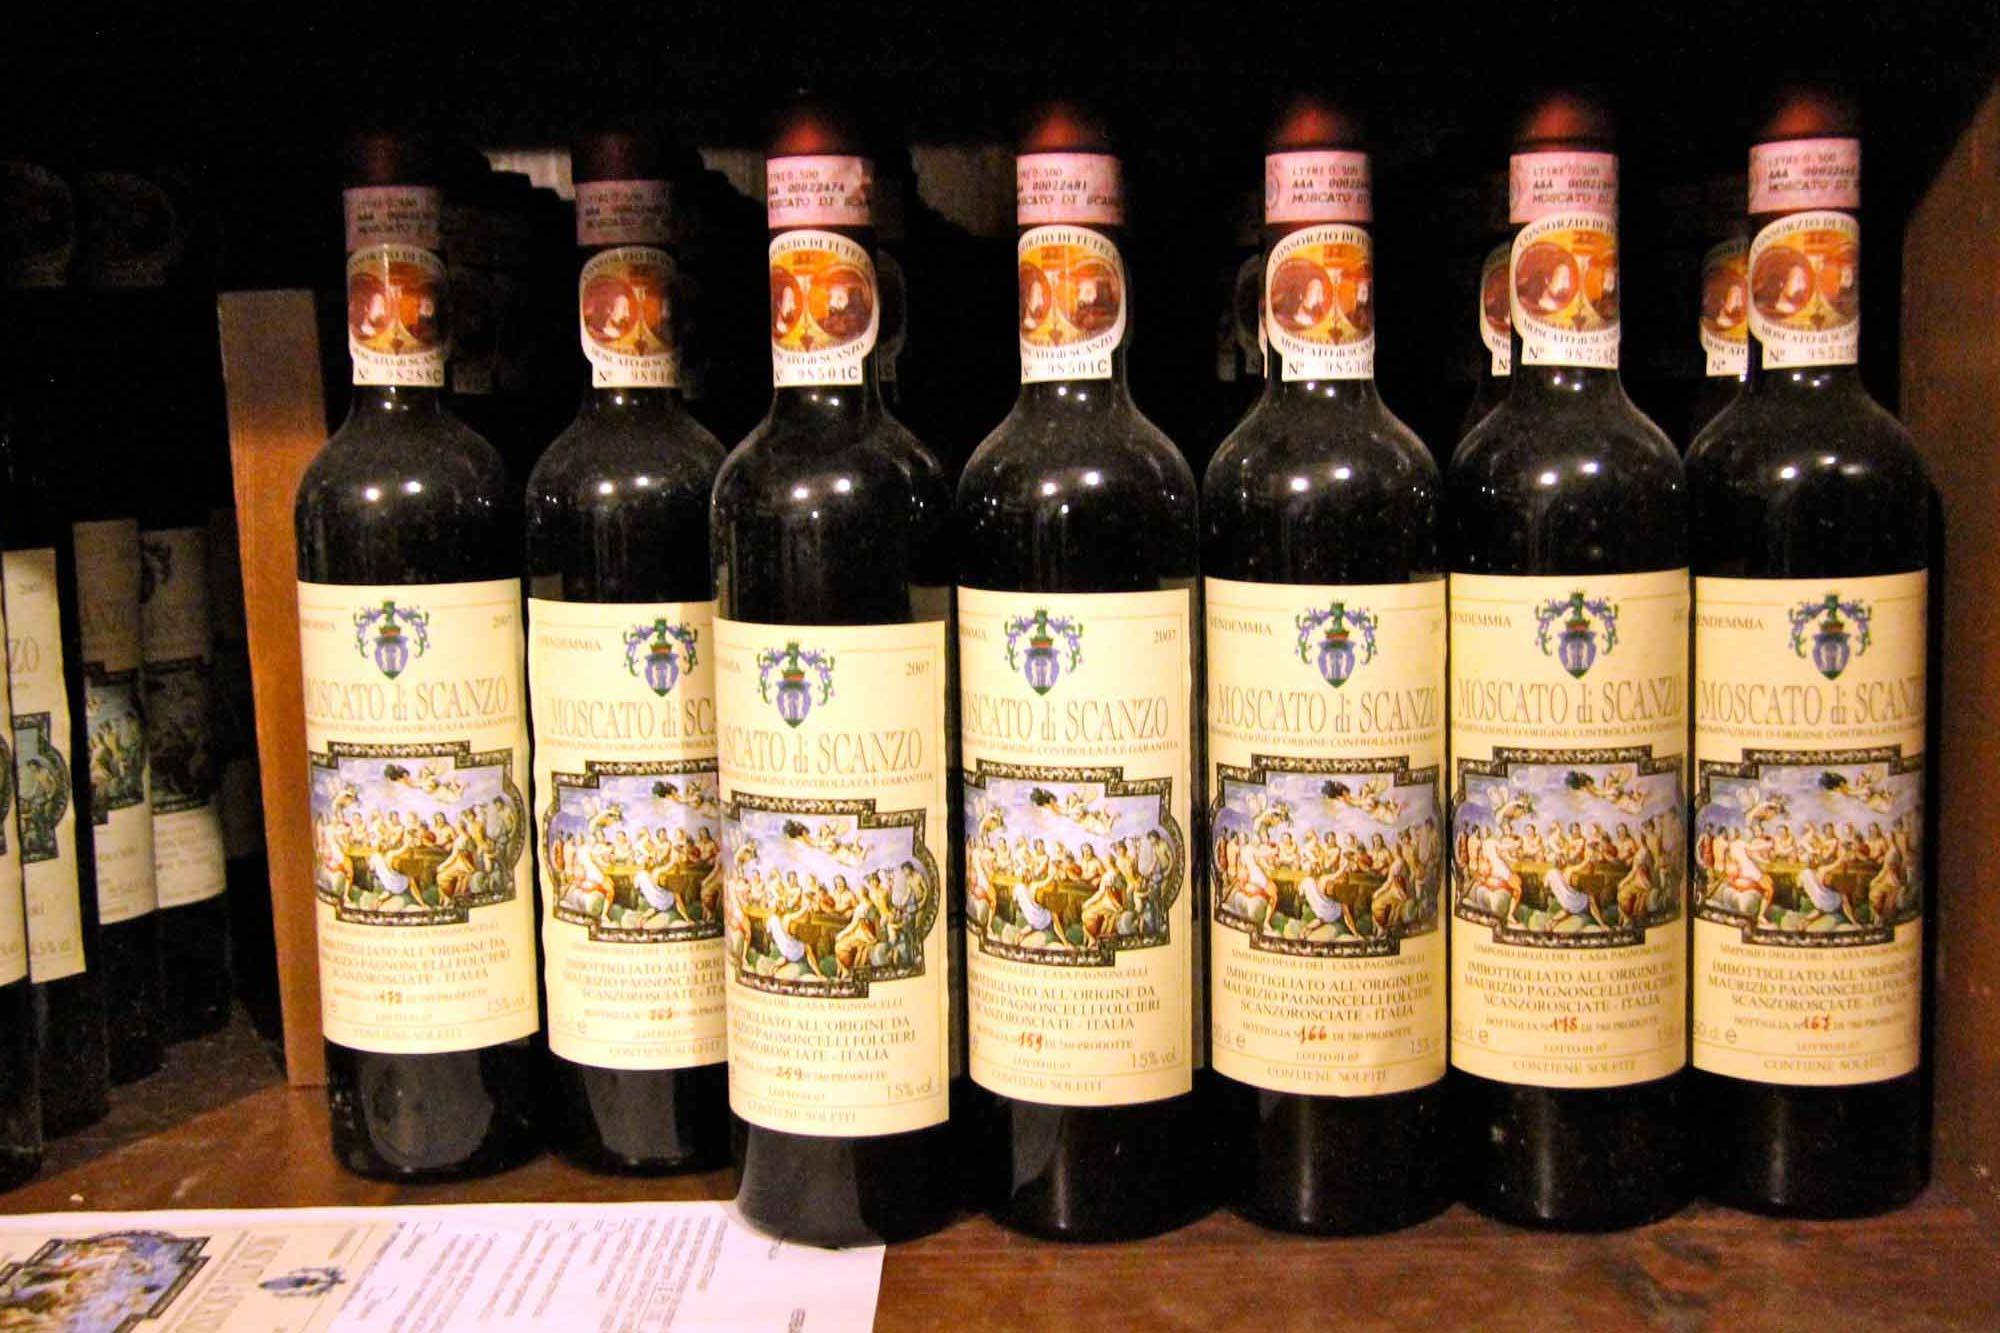 Moscato di Scanzo bottles